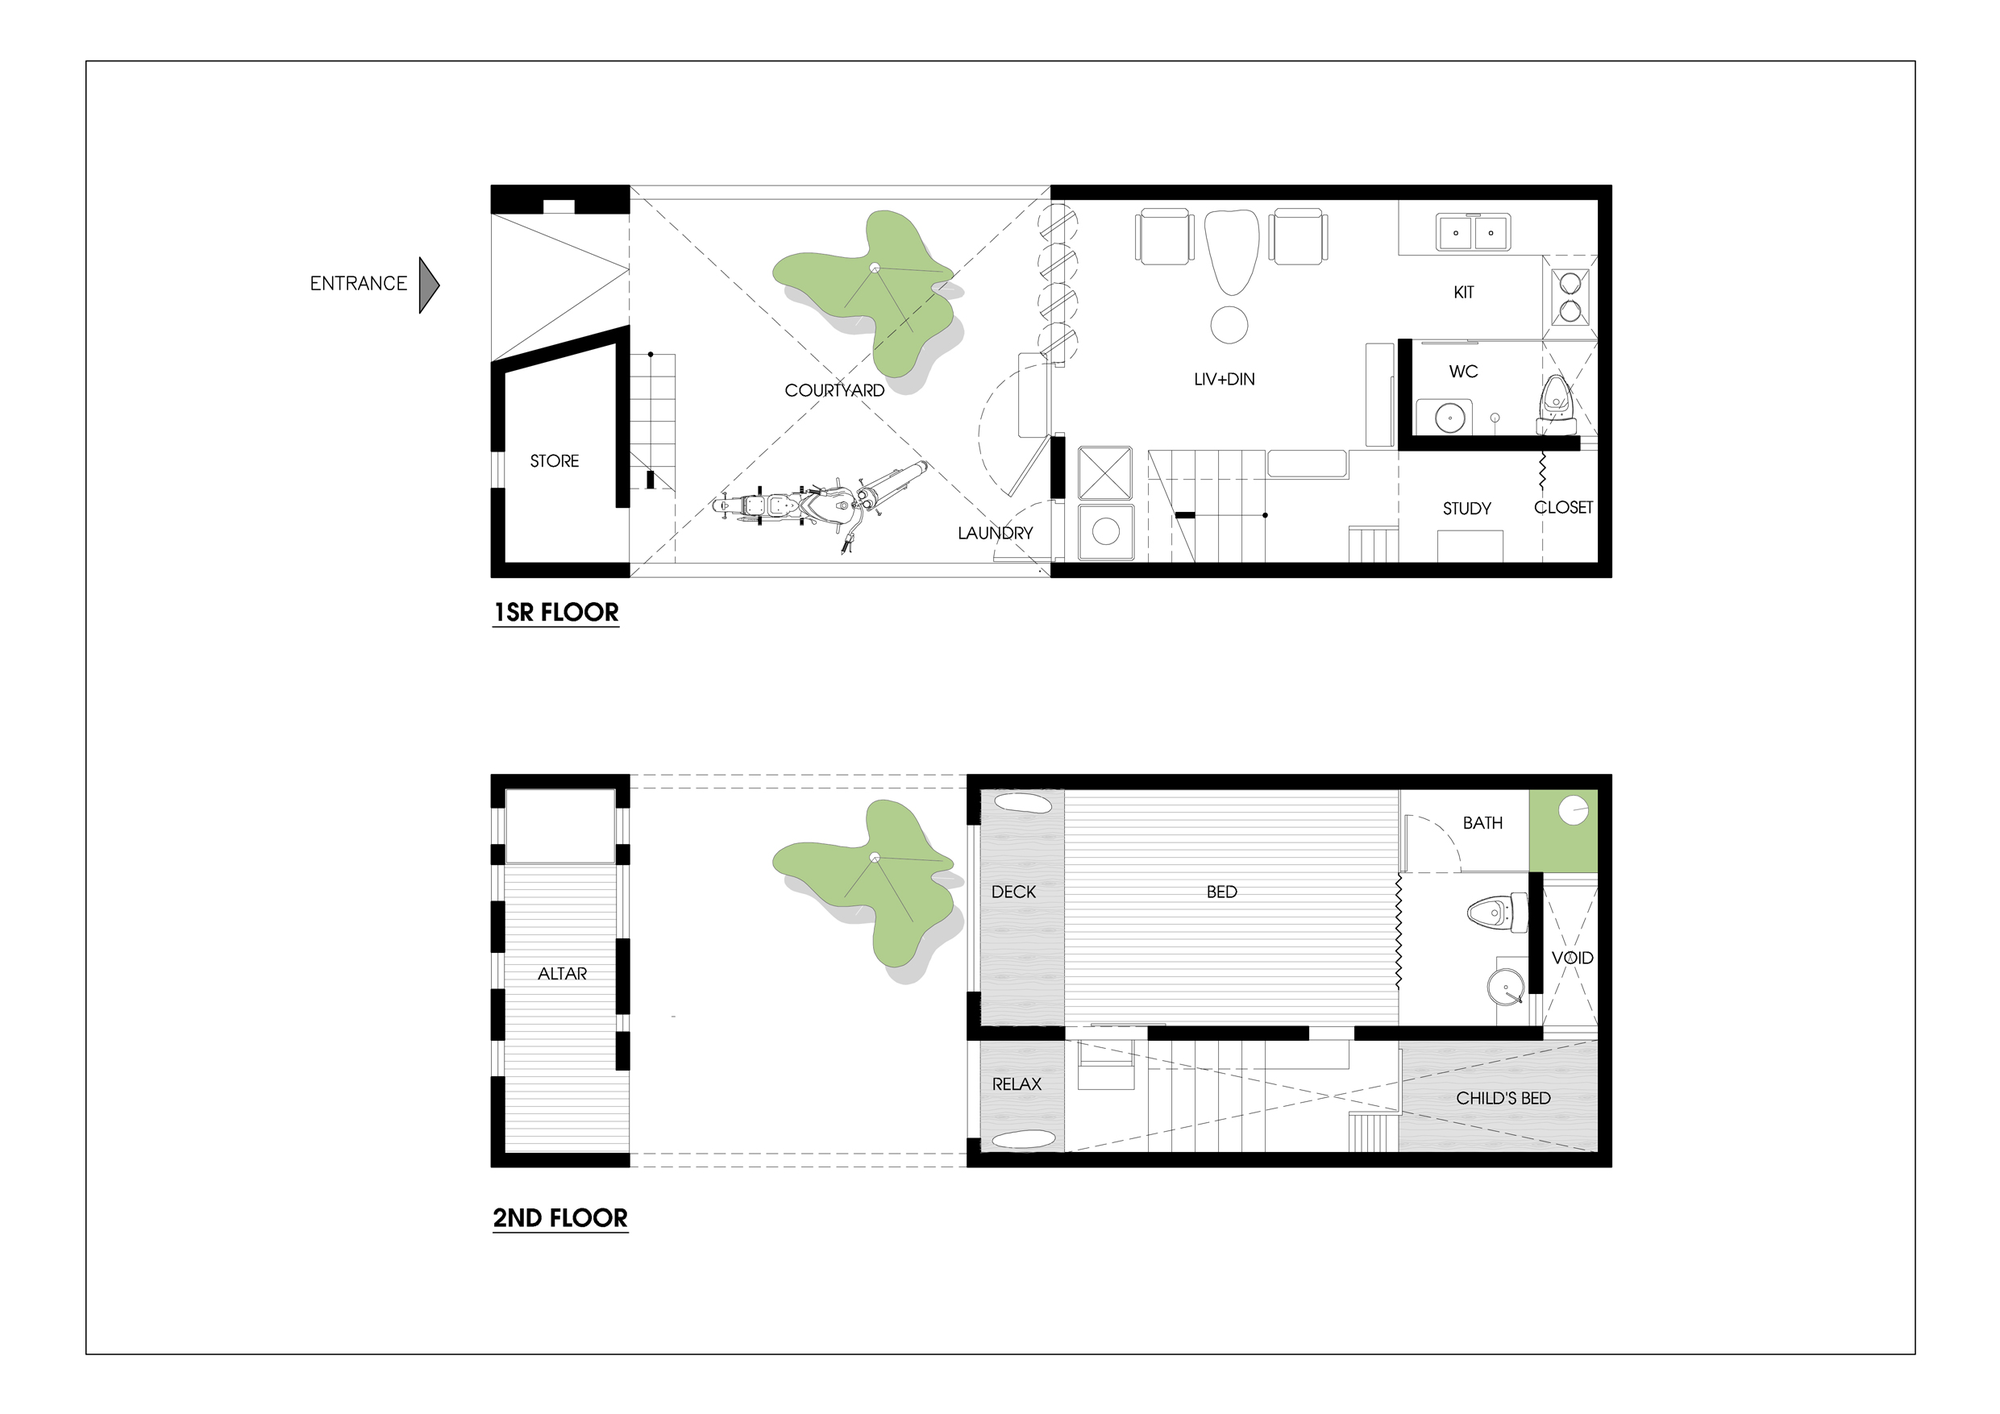 2 Bedroom 1 Bath Floor Plans together with Kn House Small House Thats Cosy Quirky also The Floor Plan likewise Apartments together with WA5f 16883. on cottage apartment floor plans